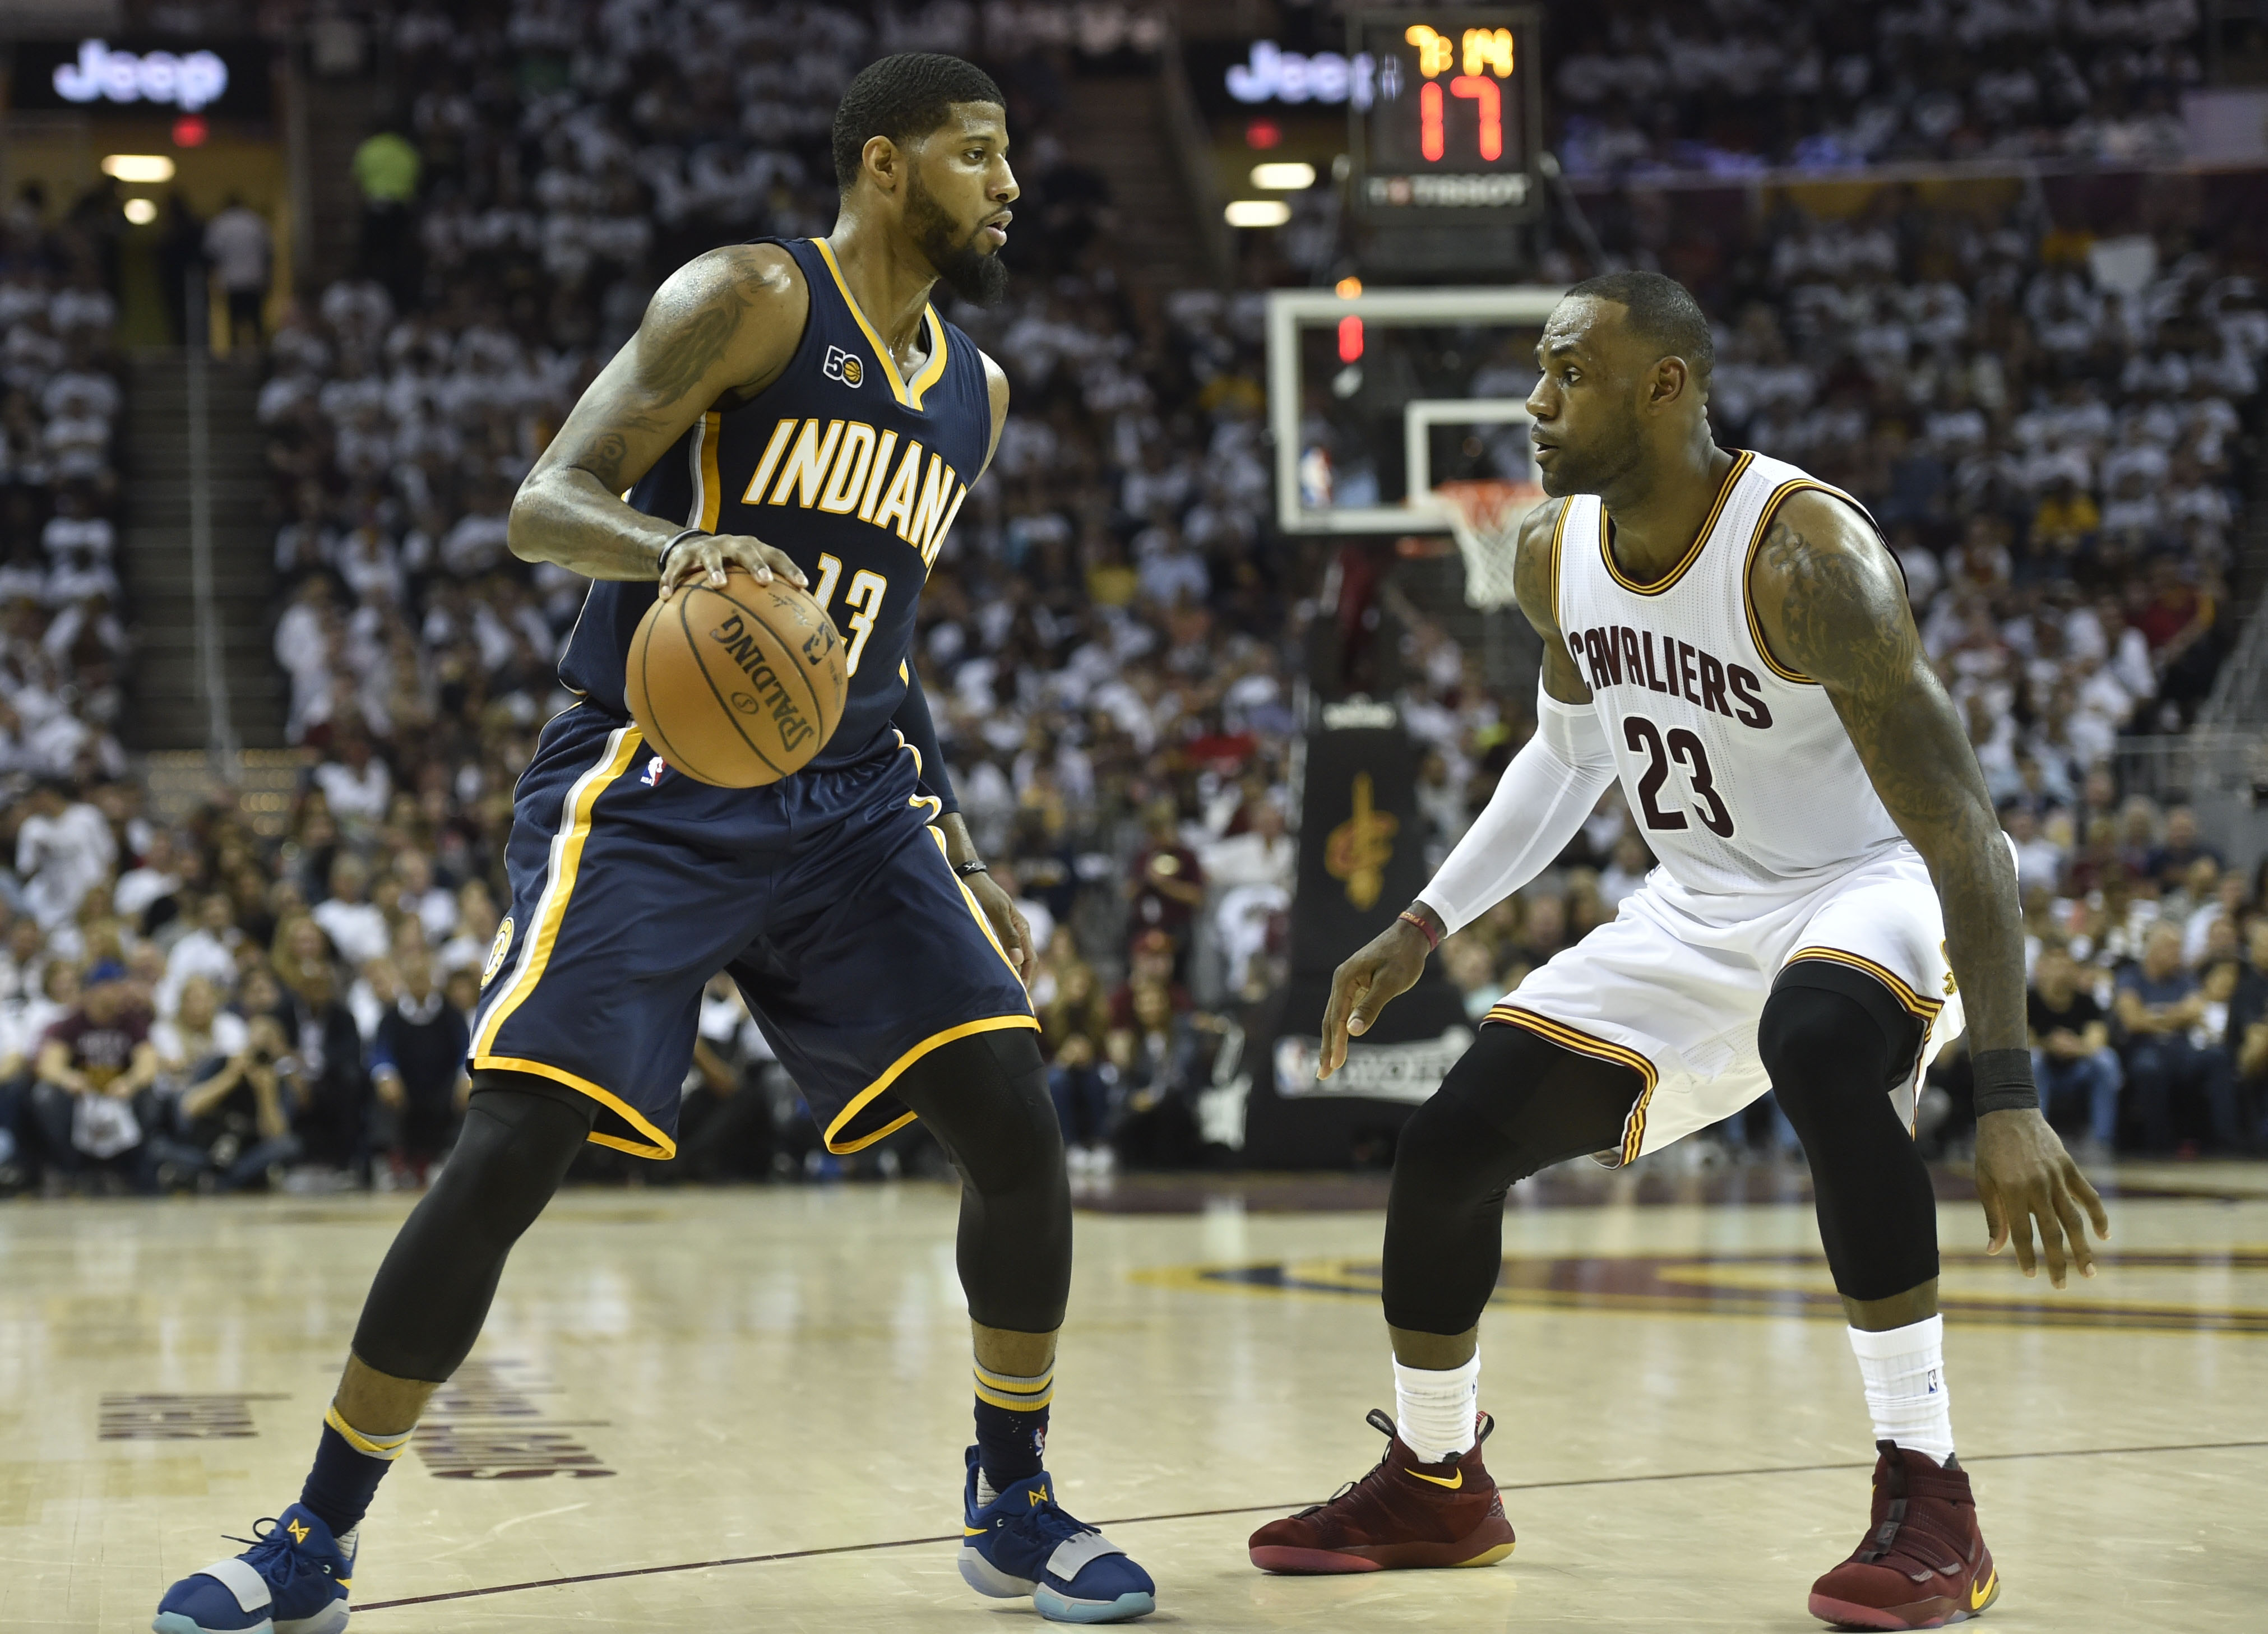 10013769-nba-playoffs-indiana-pacers-at-cleveland-cavaliers-1